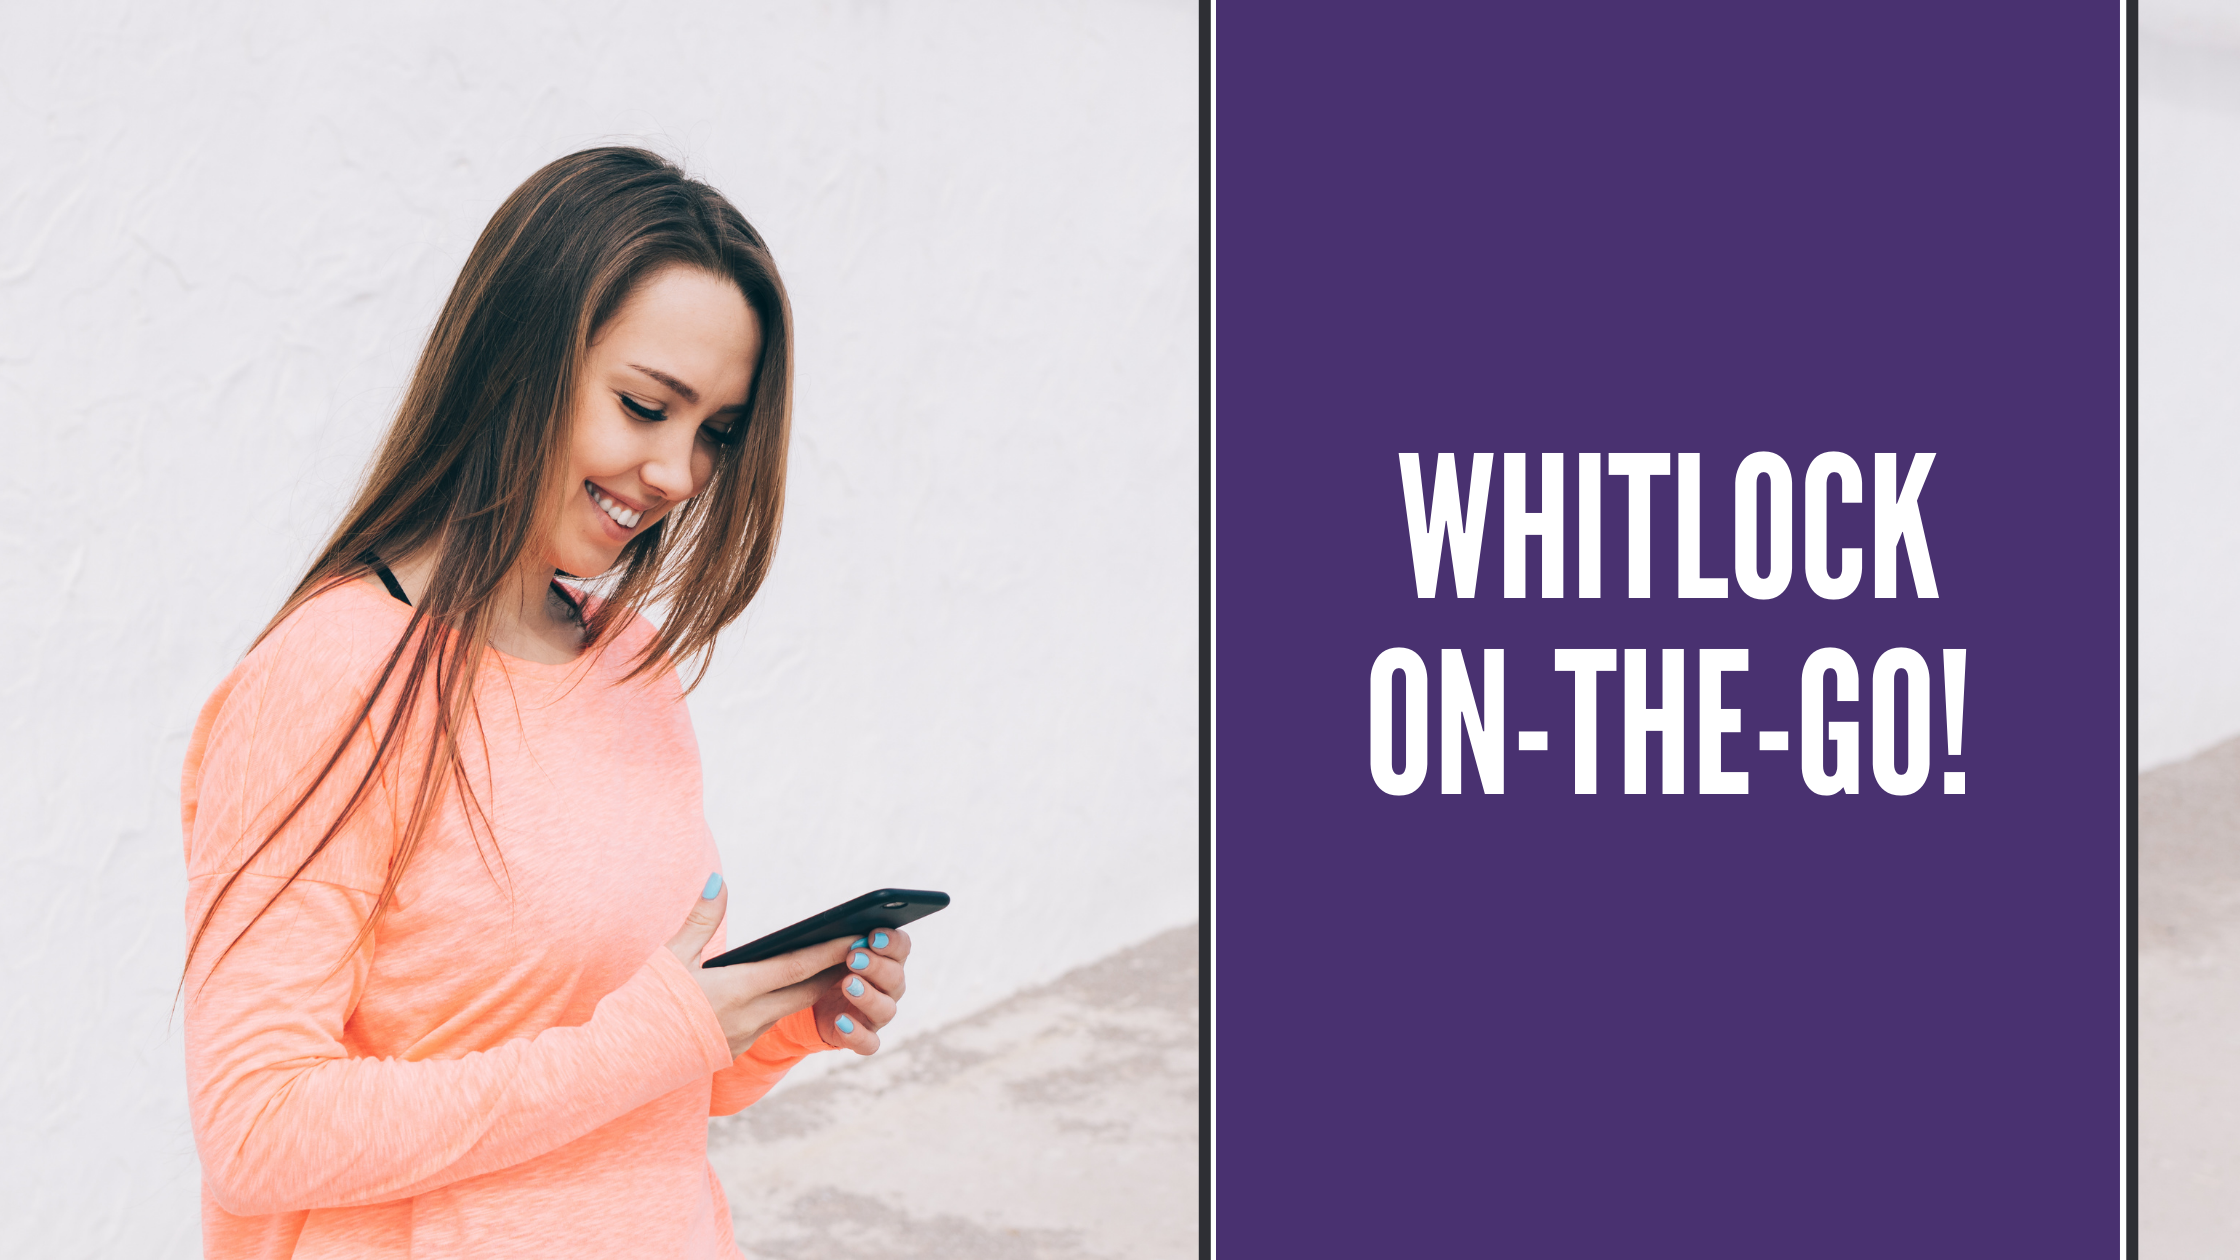 Whitlock-On-The-Go: A Healthy Smile Faster, with Fewer Appointments